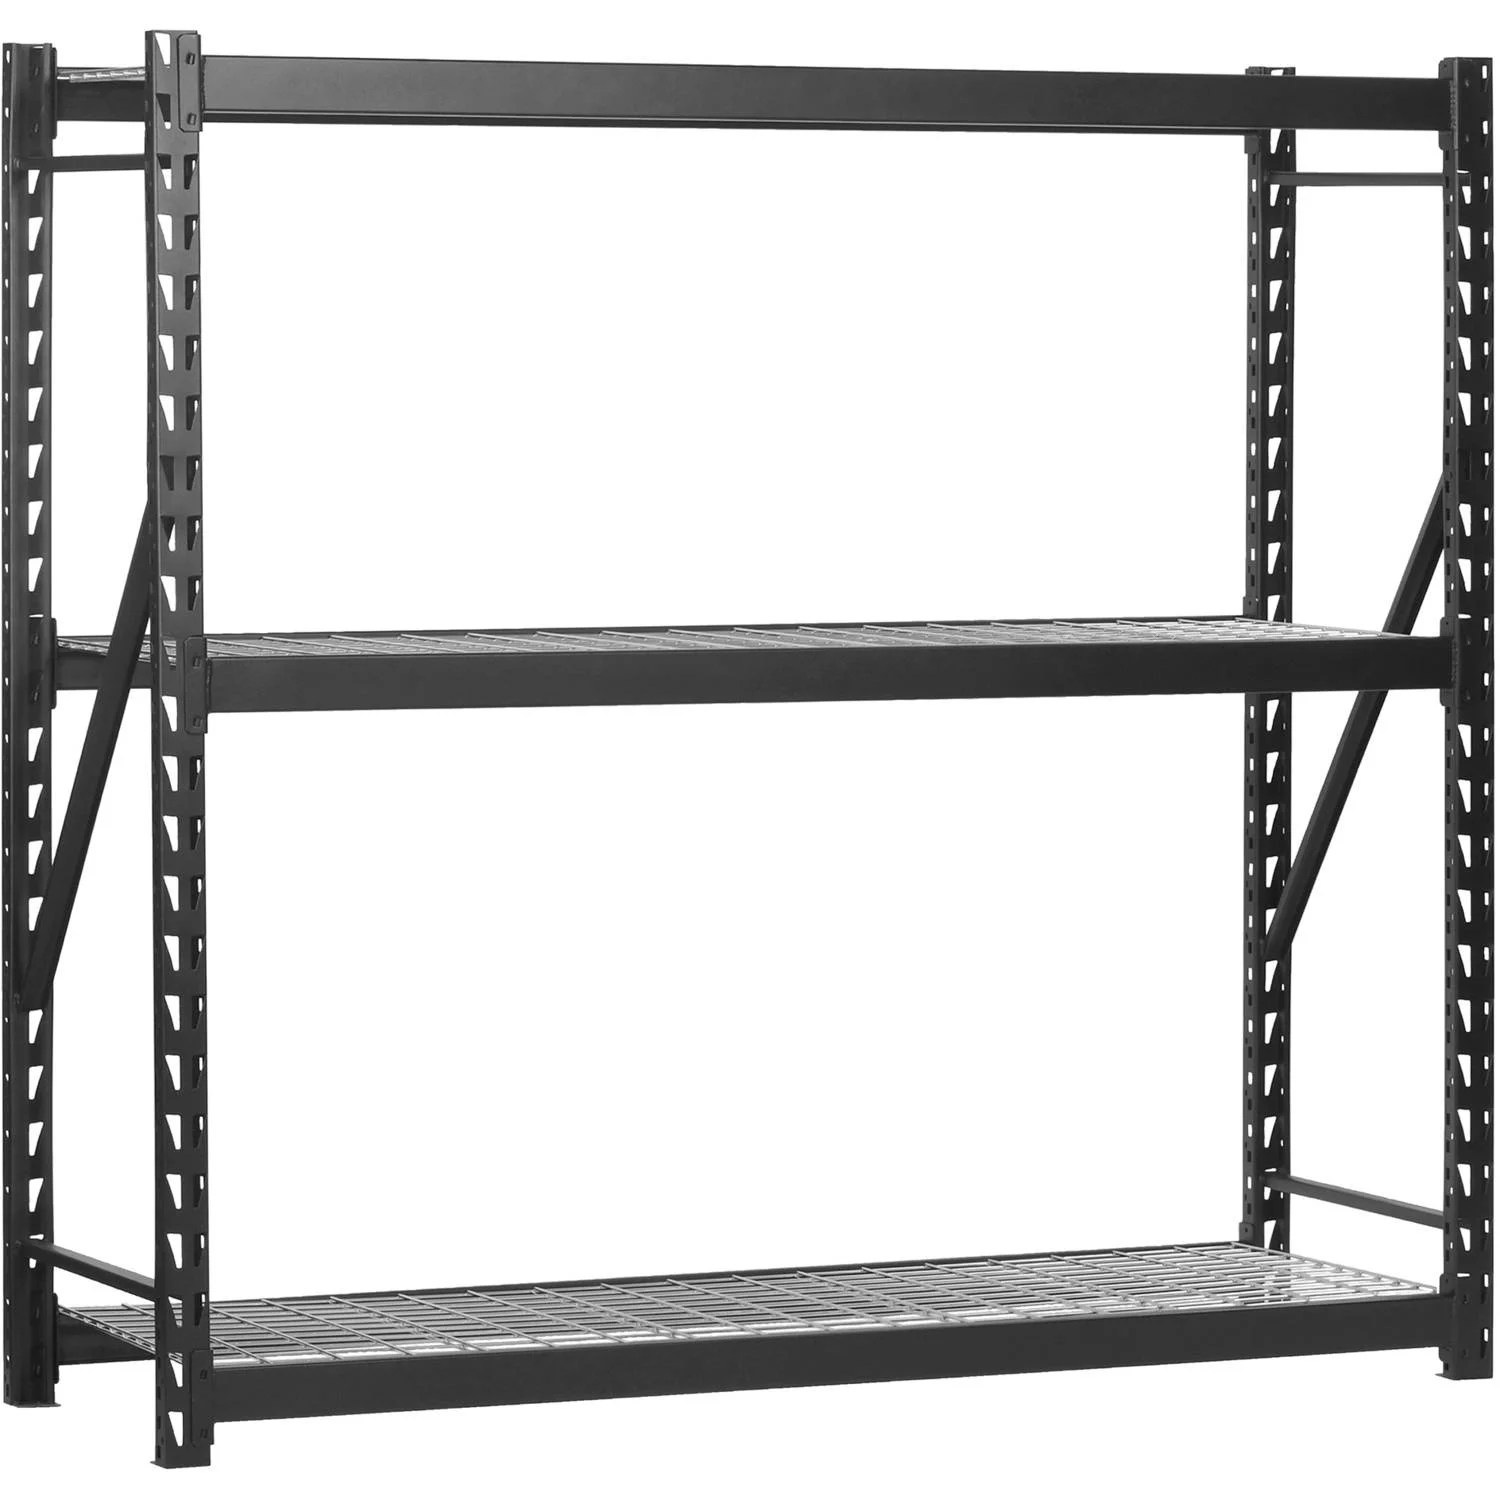 Storage Racks Edsal 77